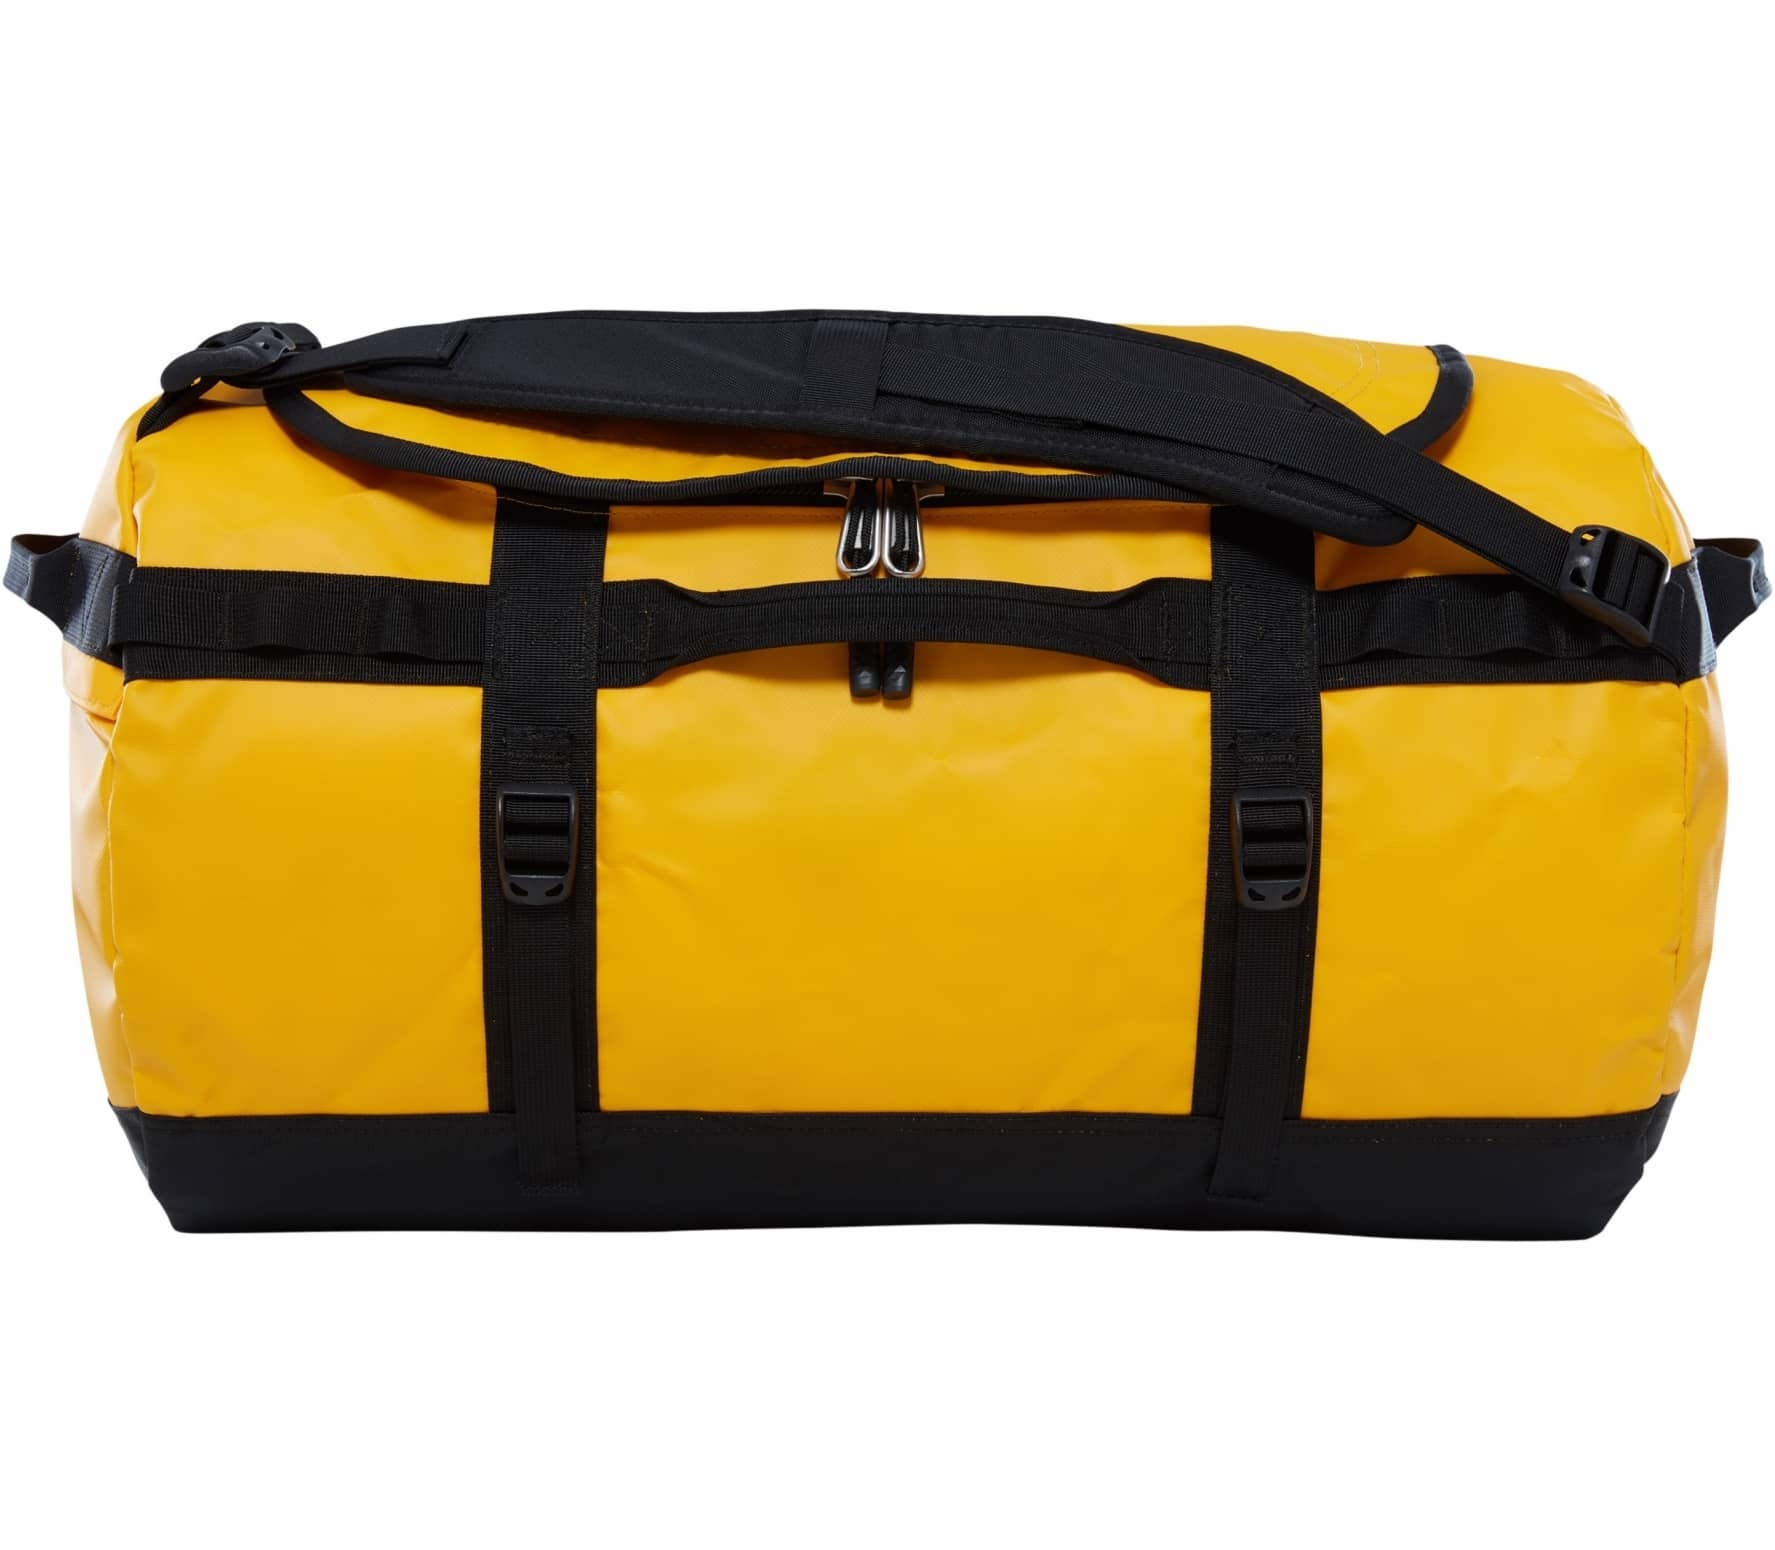 The North Face - Base Camp S - Update duffel bag (yellow/black)